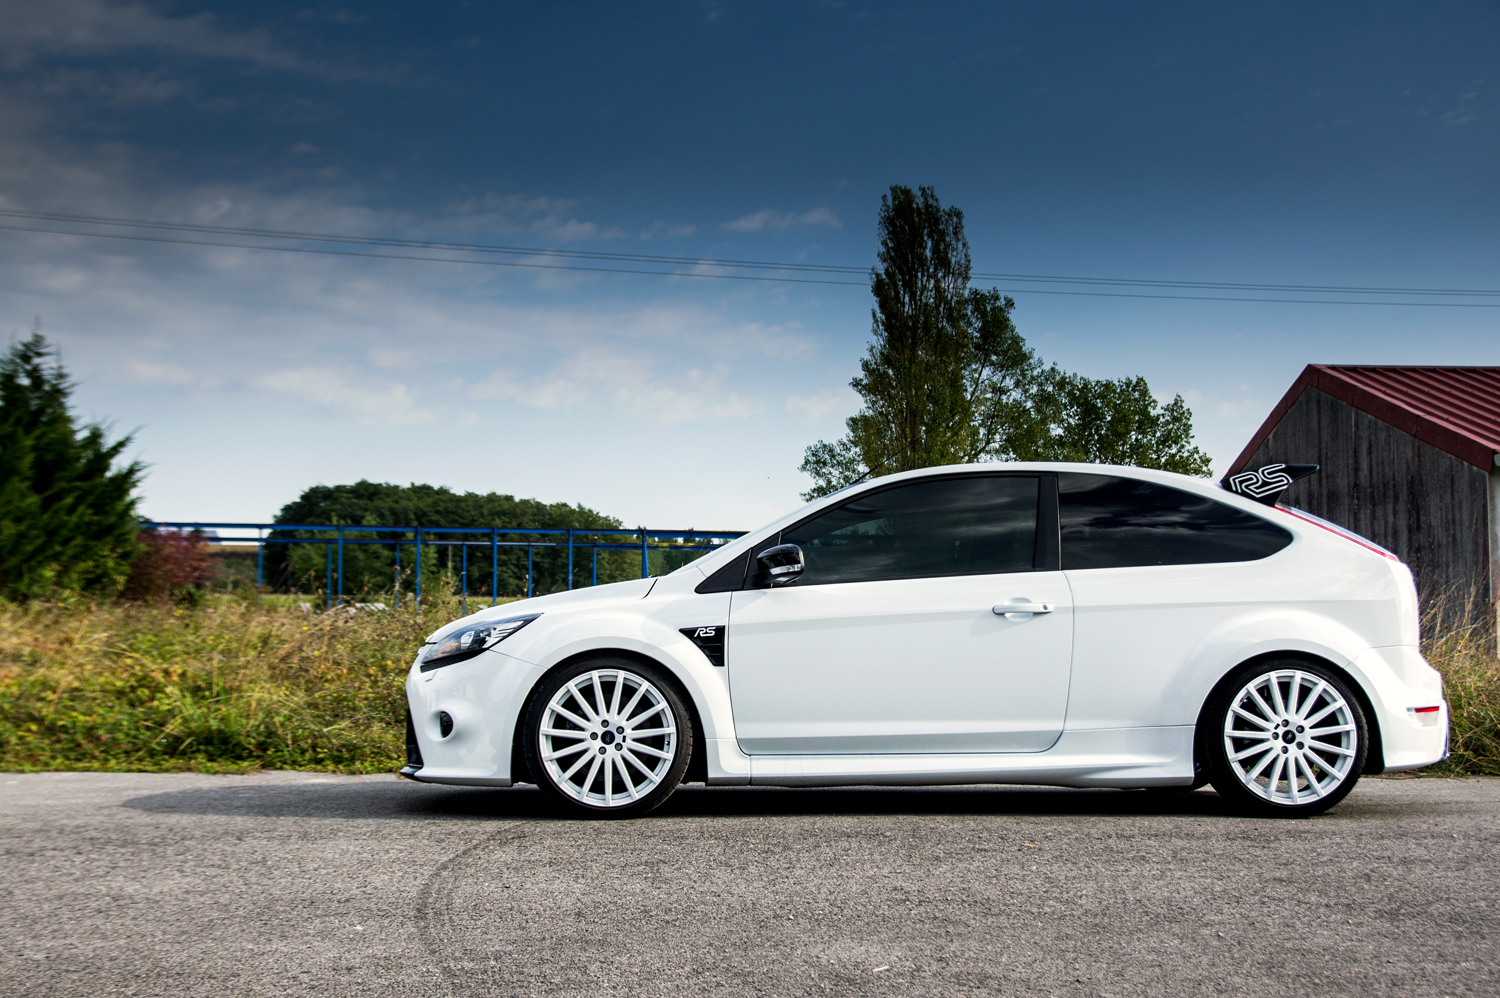 Ford Focus Ice White